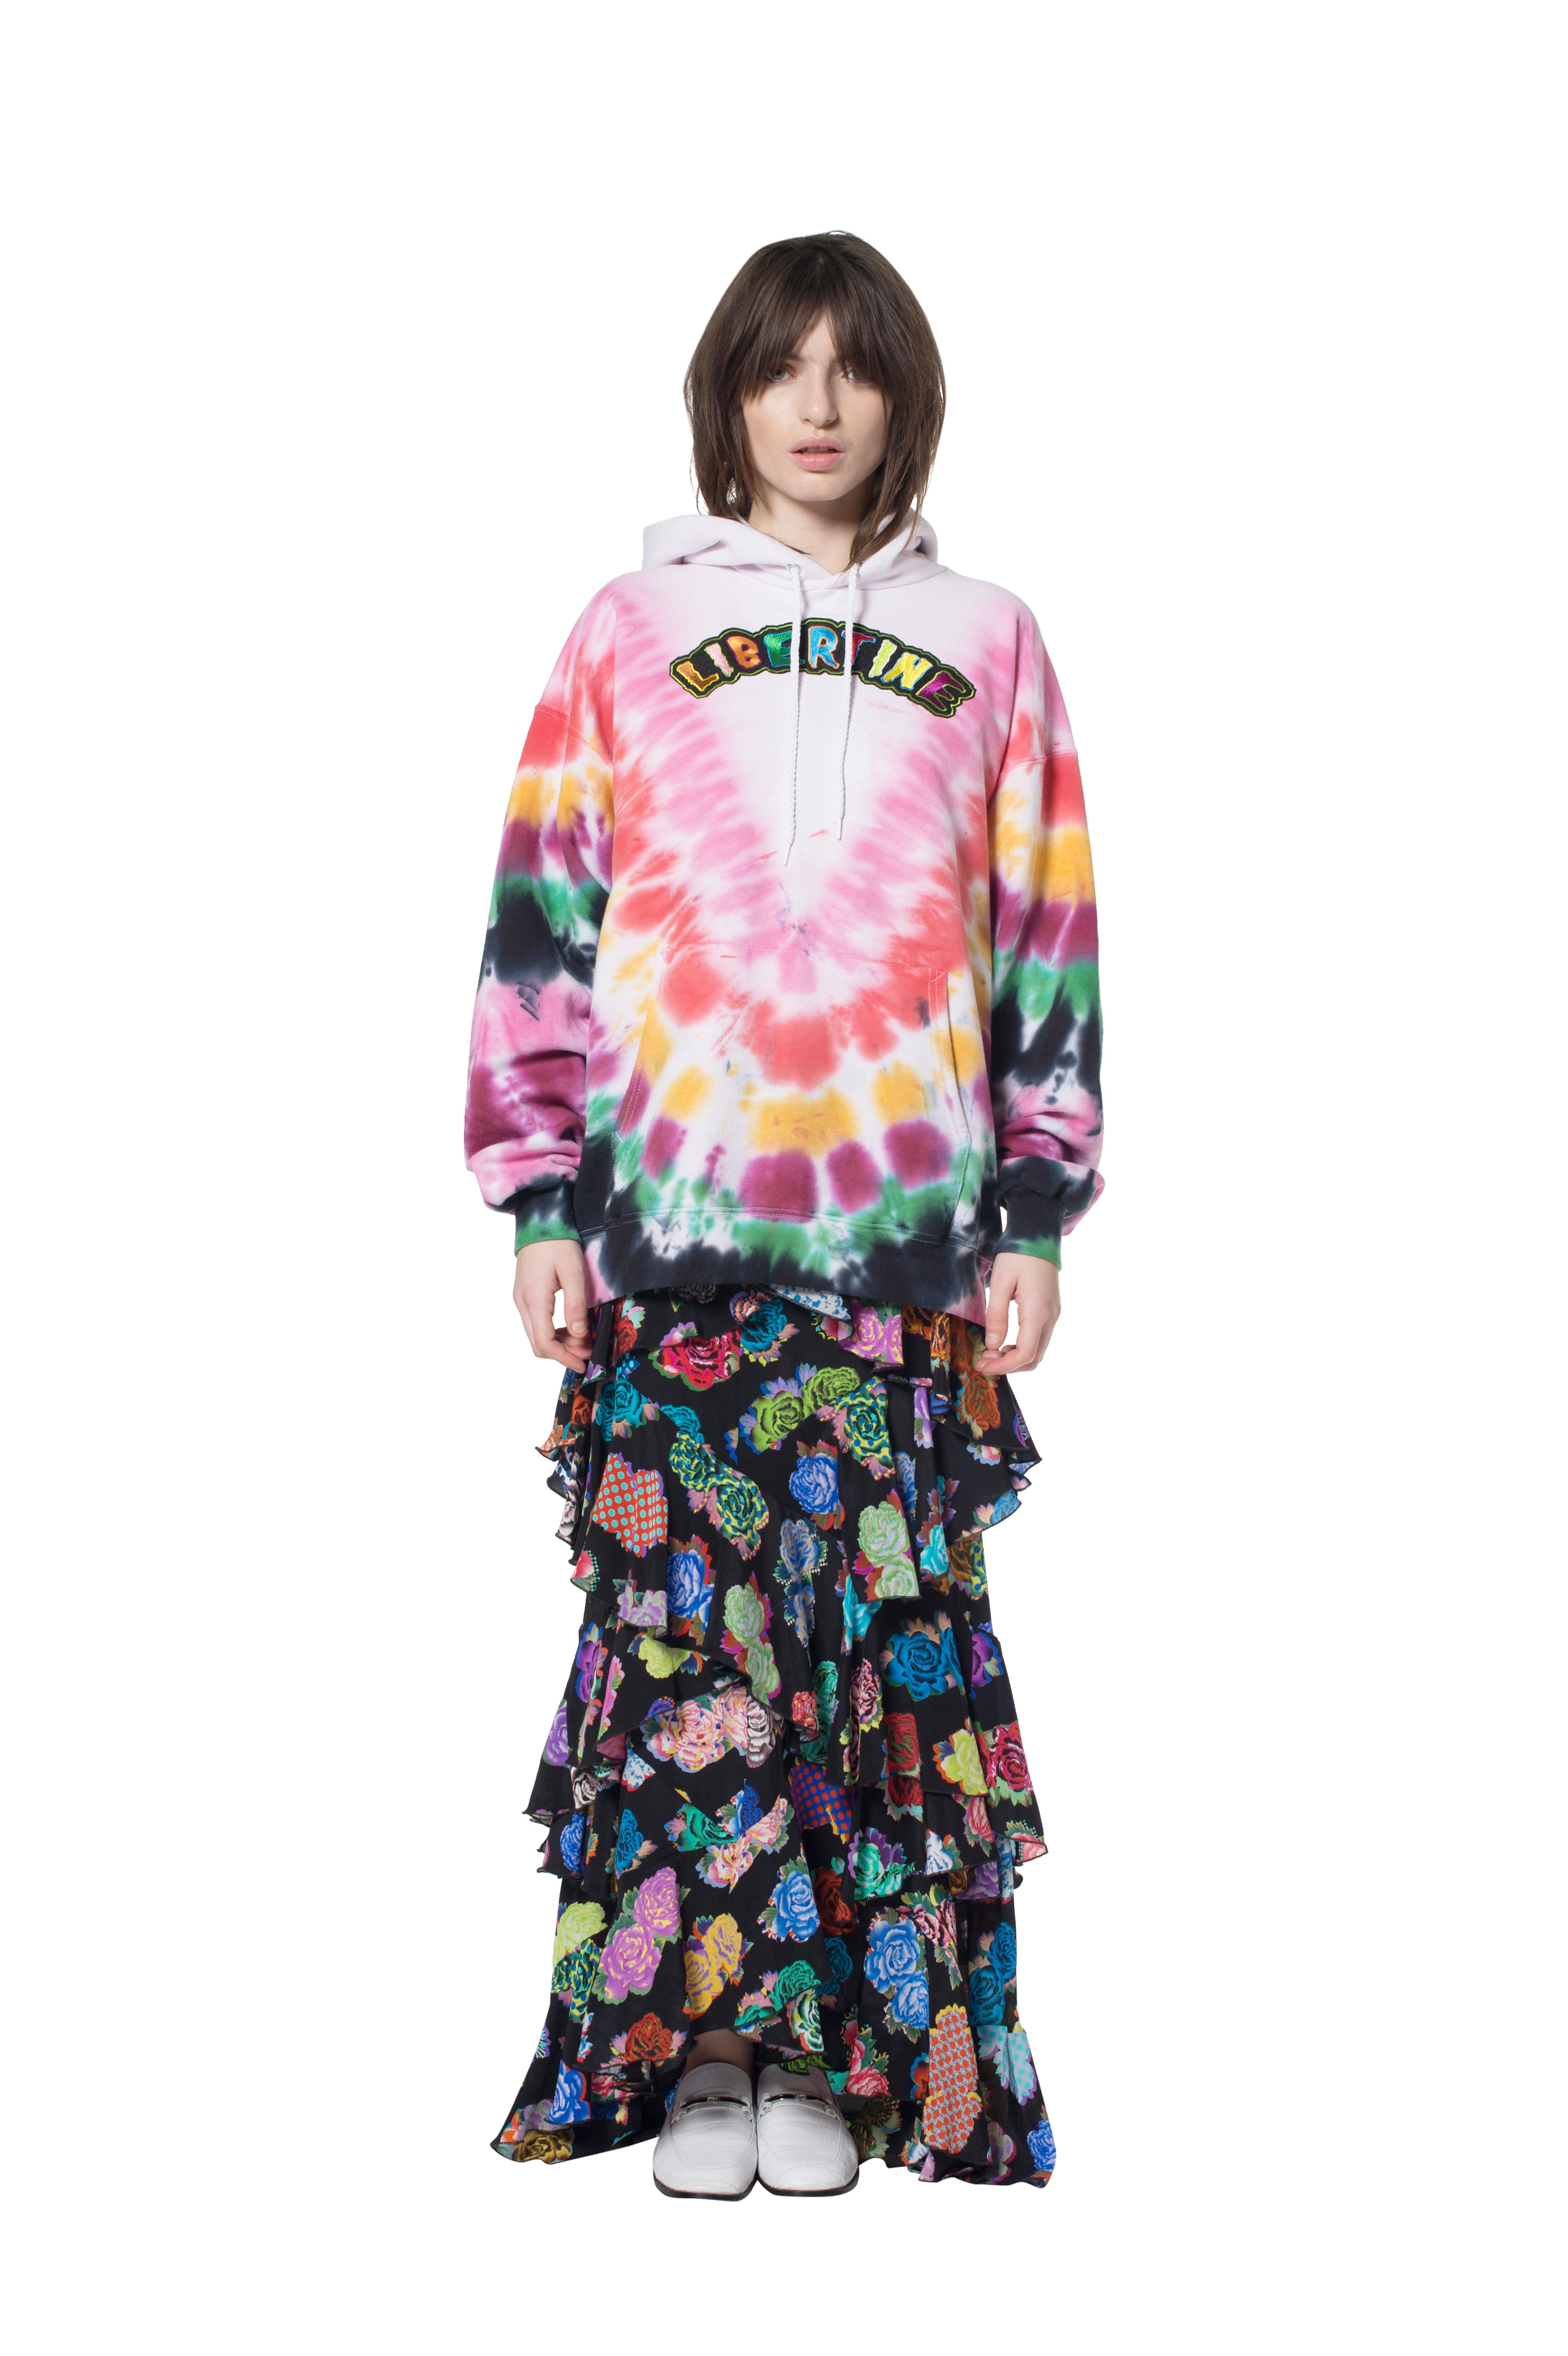 TIE DYE HOODED SWEATSHIRT - Unisex Sweats - Libertine